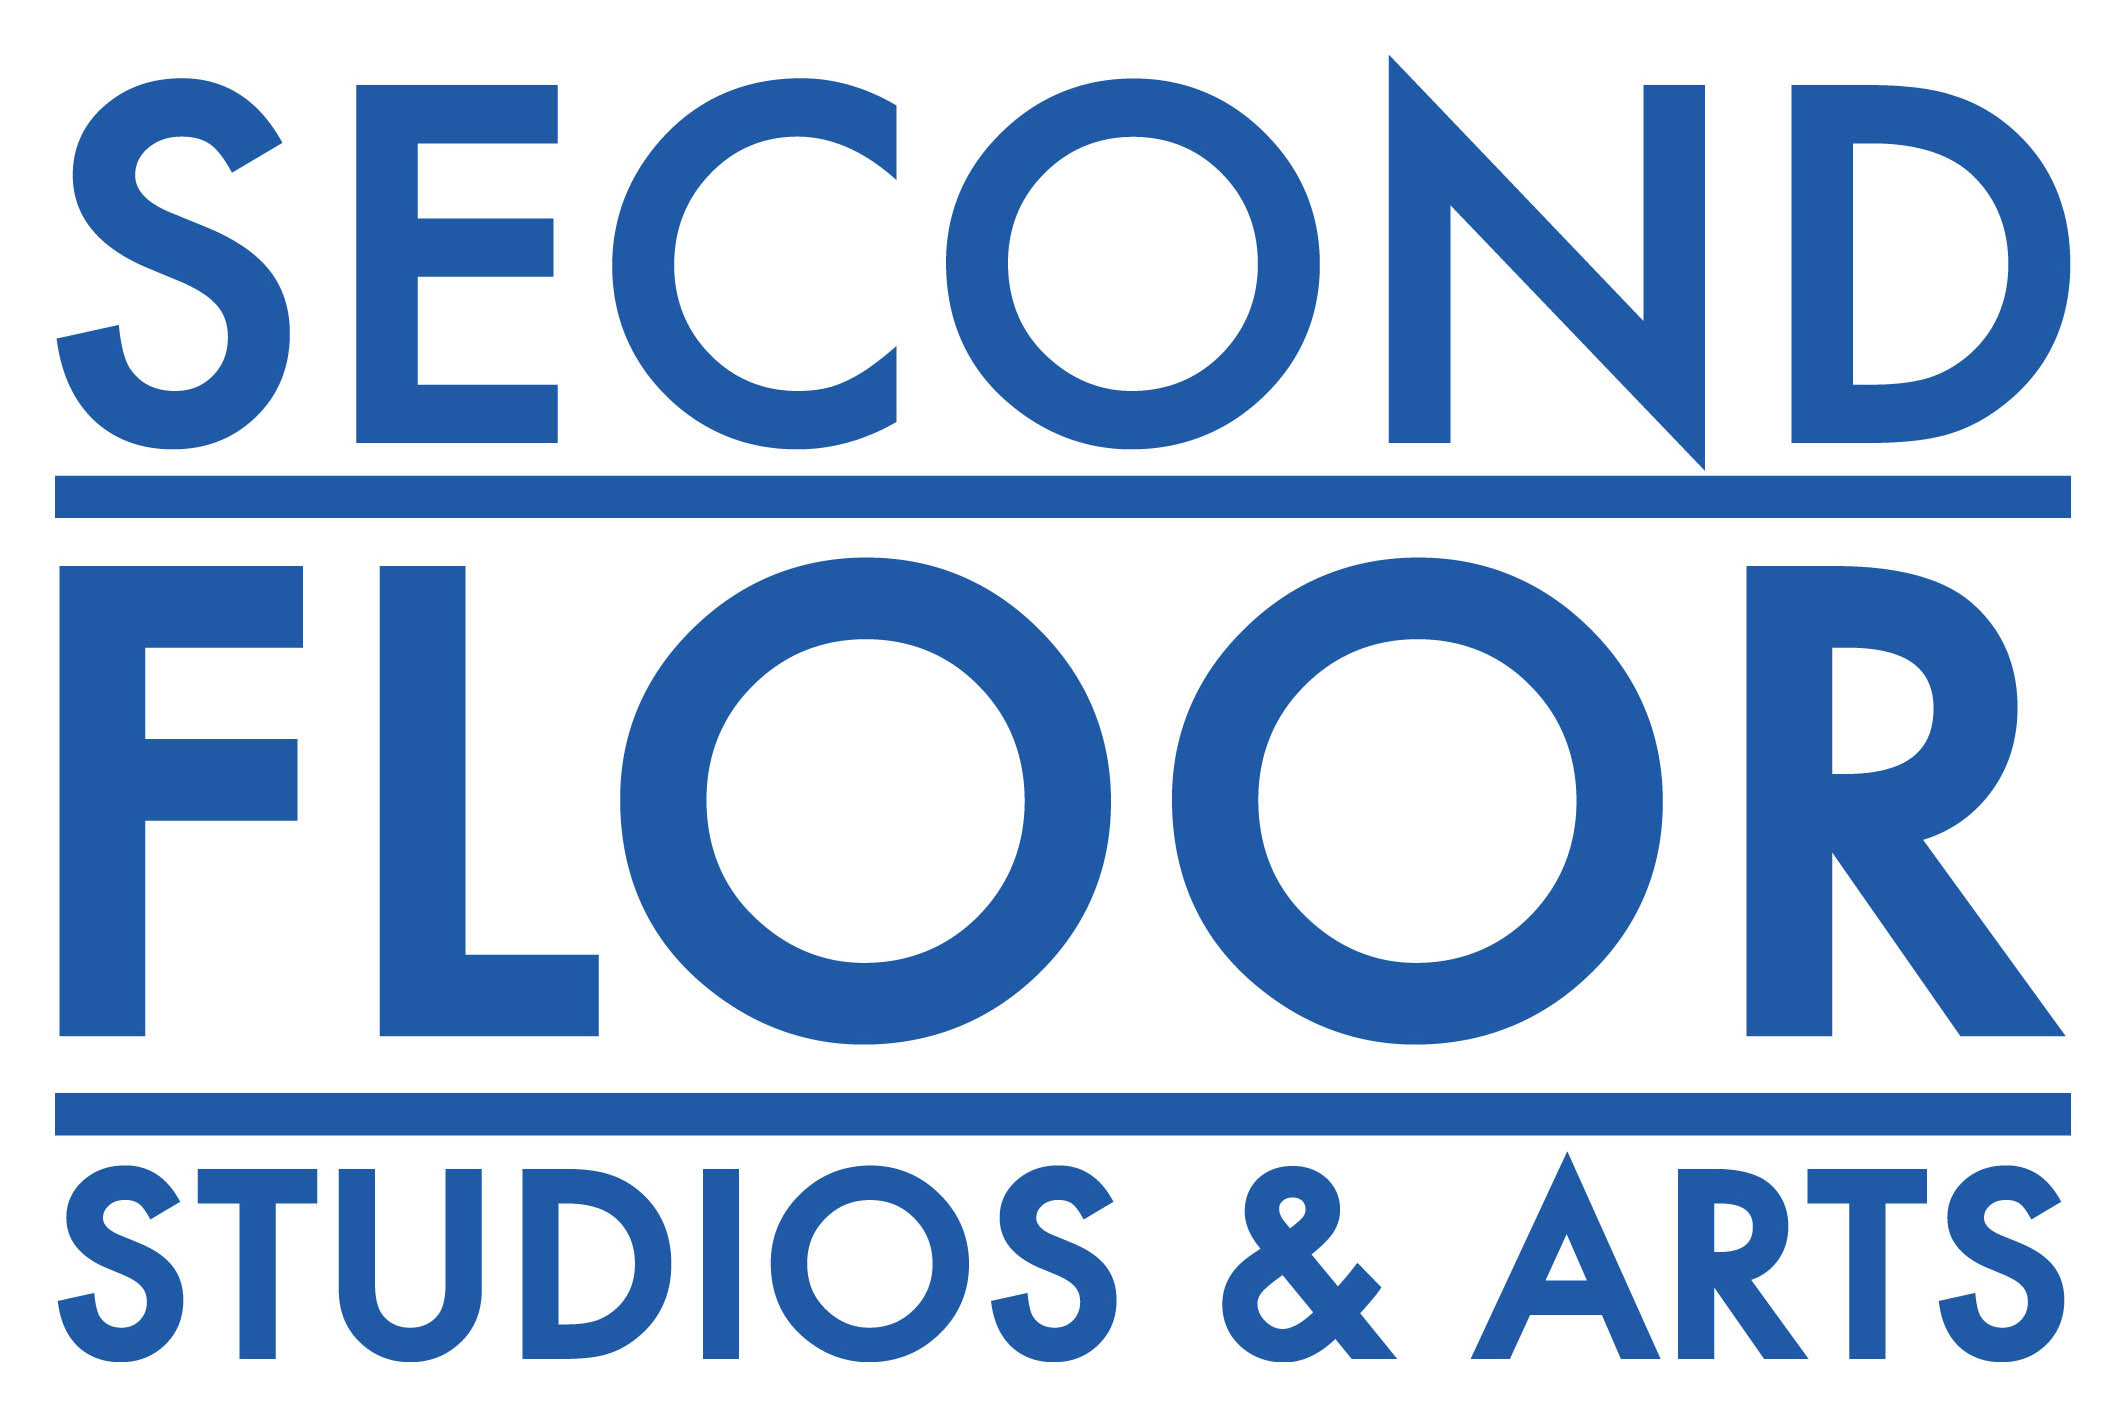 With special thanks to the members of Second Floor Studios & Arts who gave generously